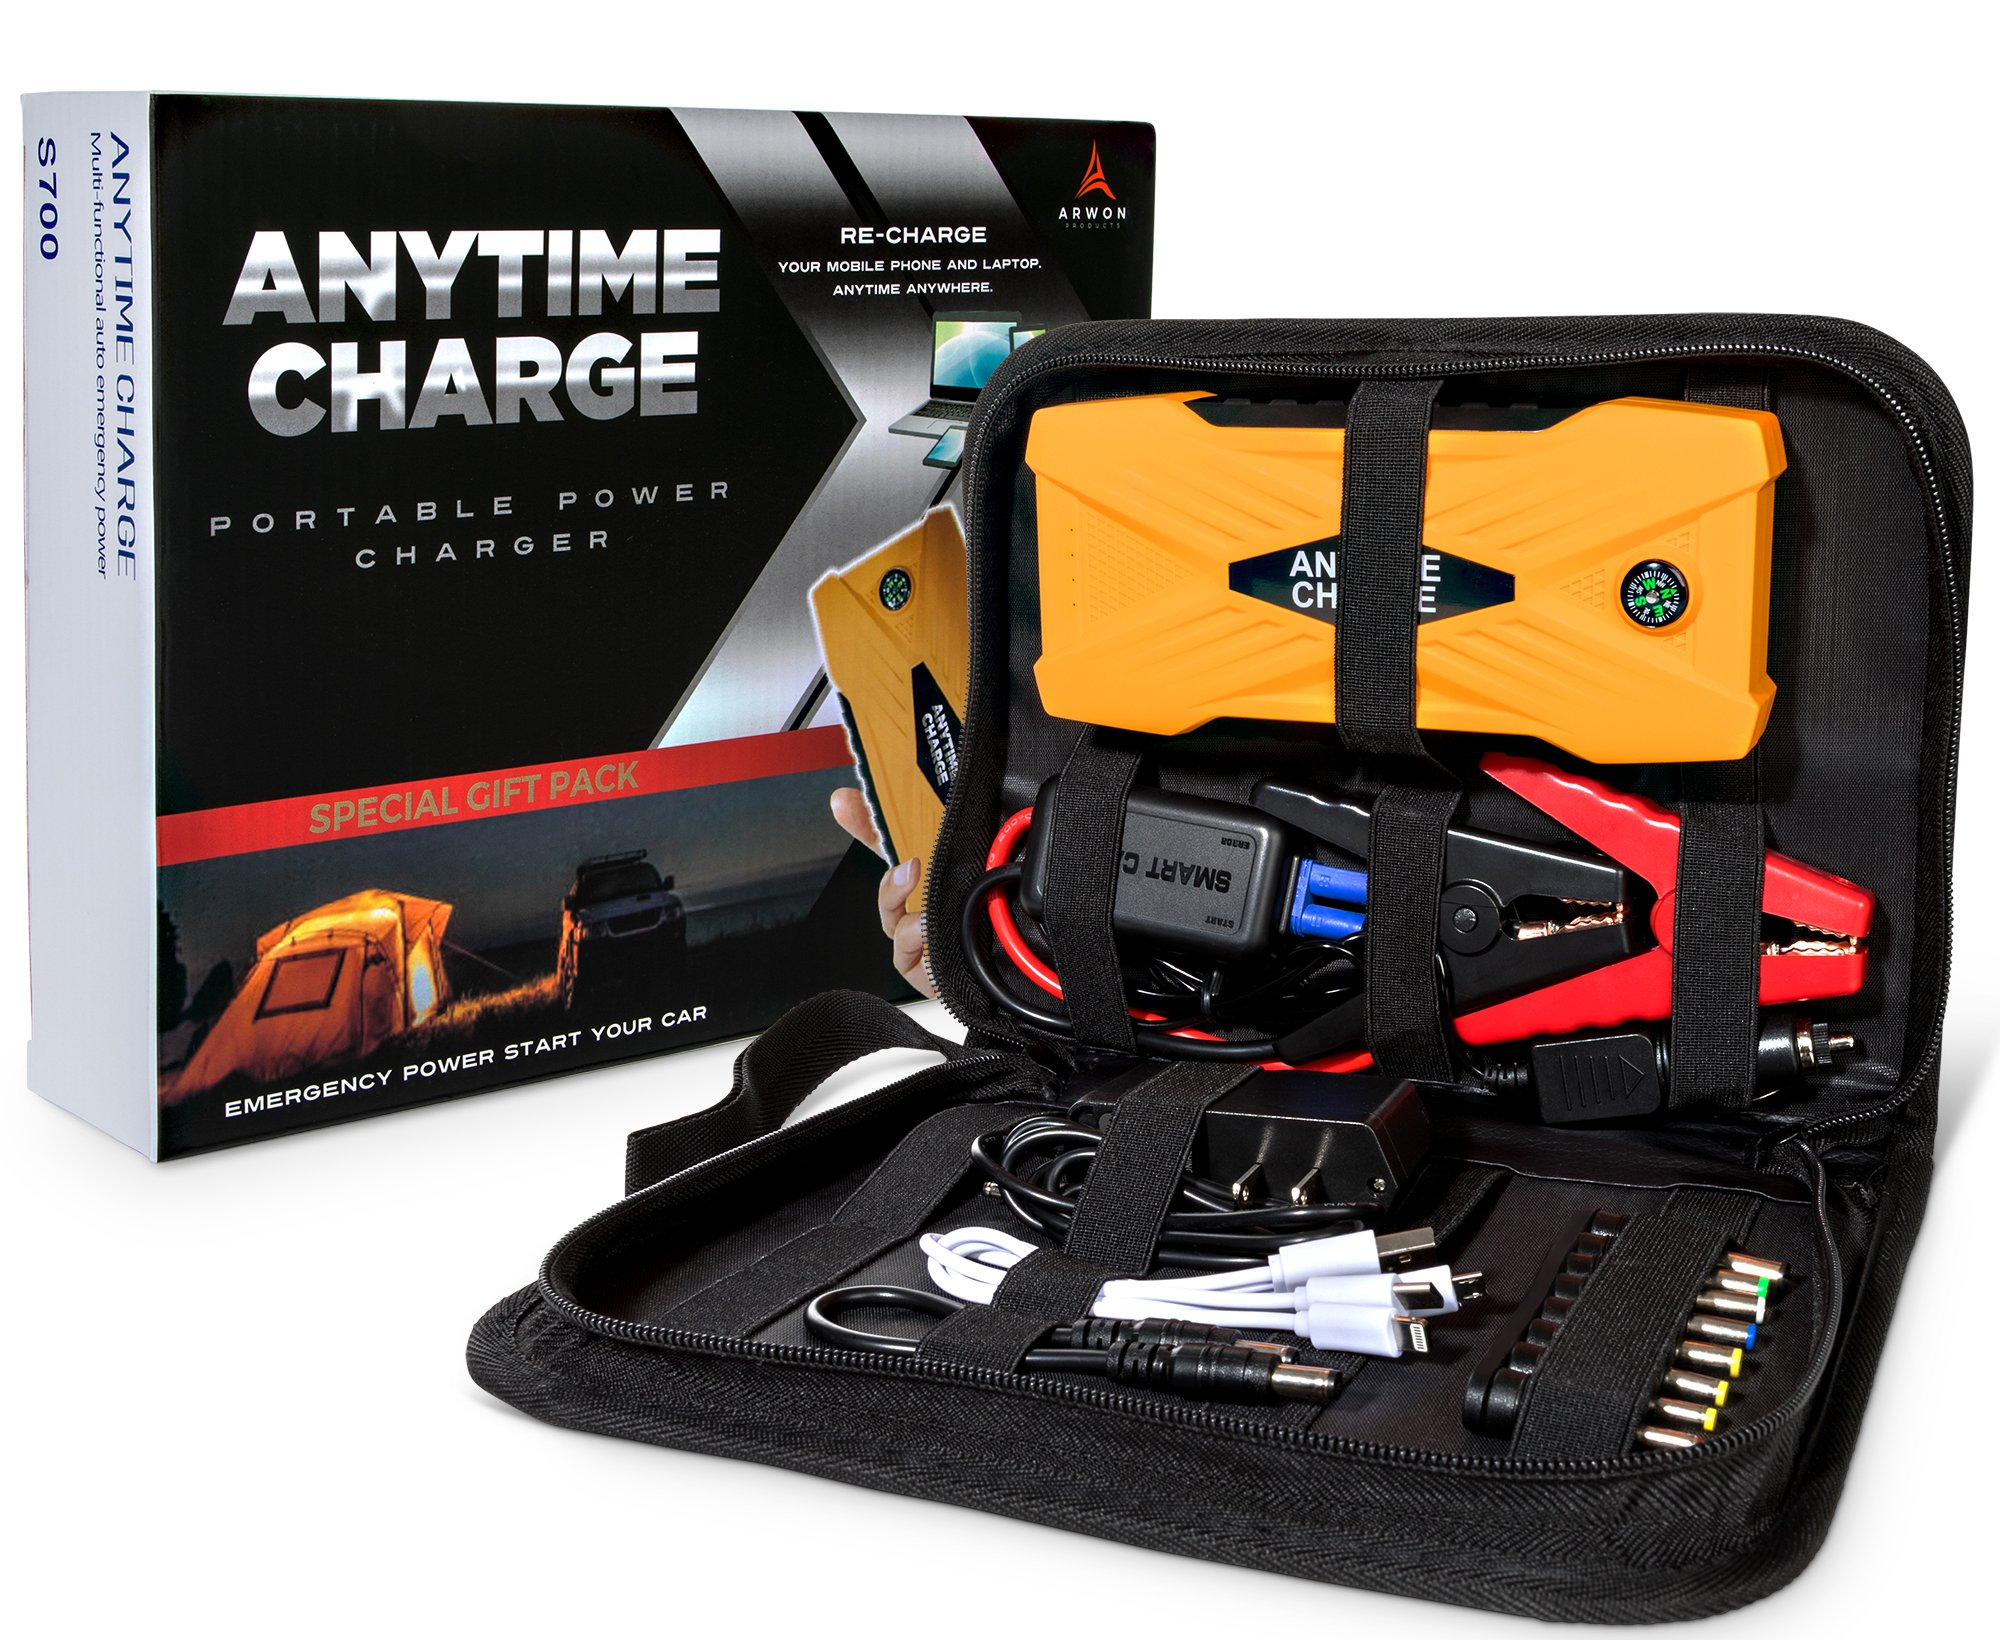 Car Battery Charger Power Pack by AnyTime - Portable, Lightweight Jump Starter with Jumper Cables, LED Light, and USB Phone Port and Cable - Compact, Emergency 12V Powerful Battery Charging Kit, Small